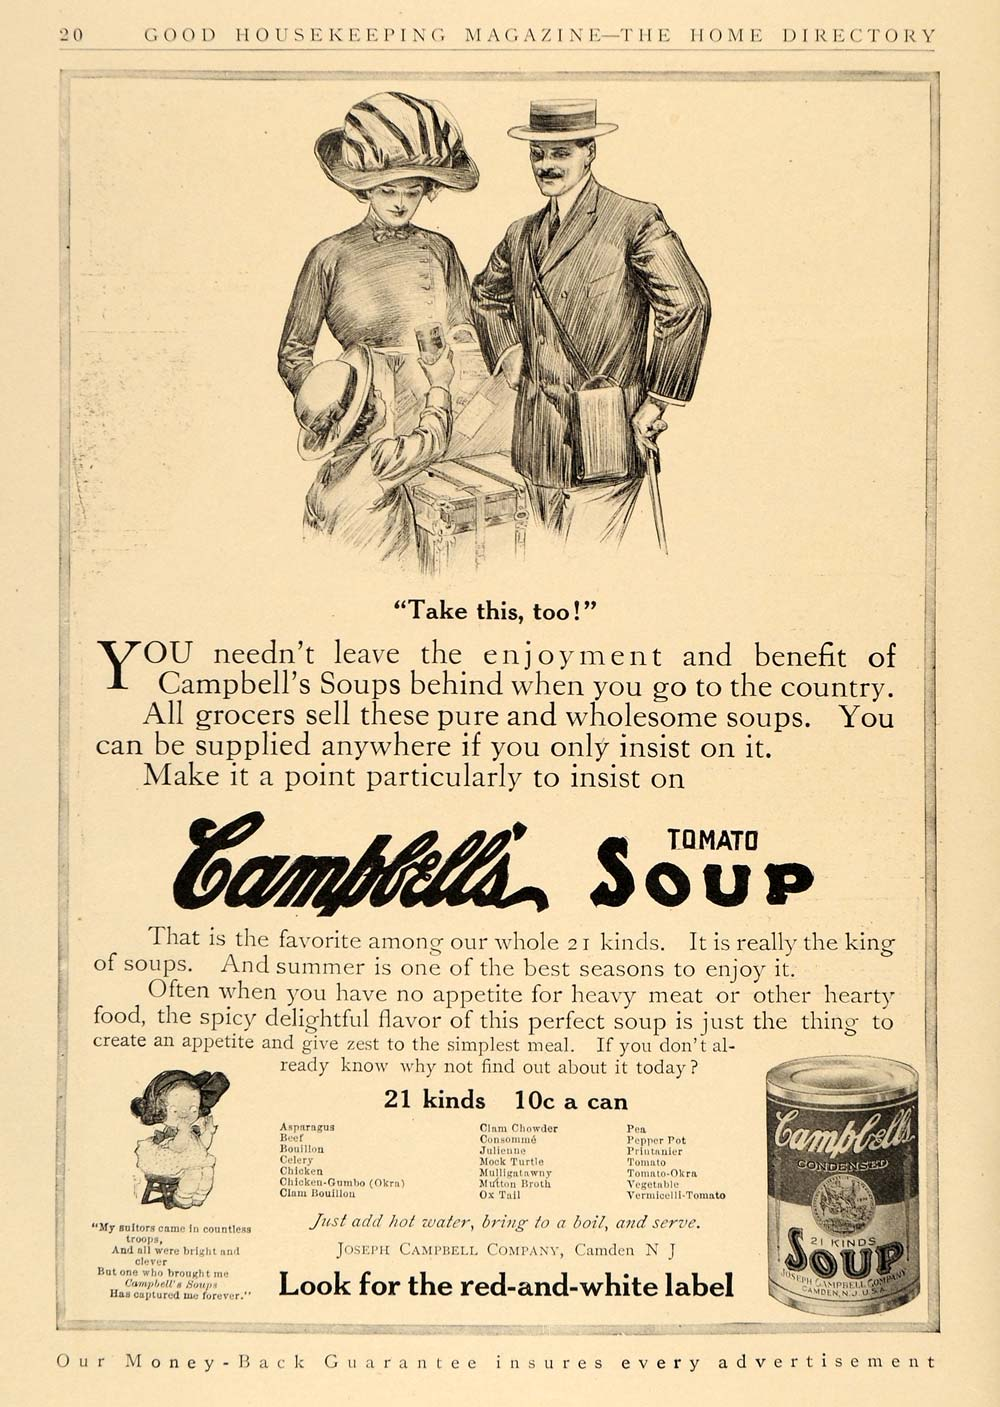 1911 Ad Joseph Campbell Canned Tomato Soup Camden NJ - ORIGINAL ADVERTISING GH2